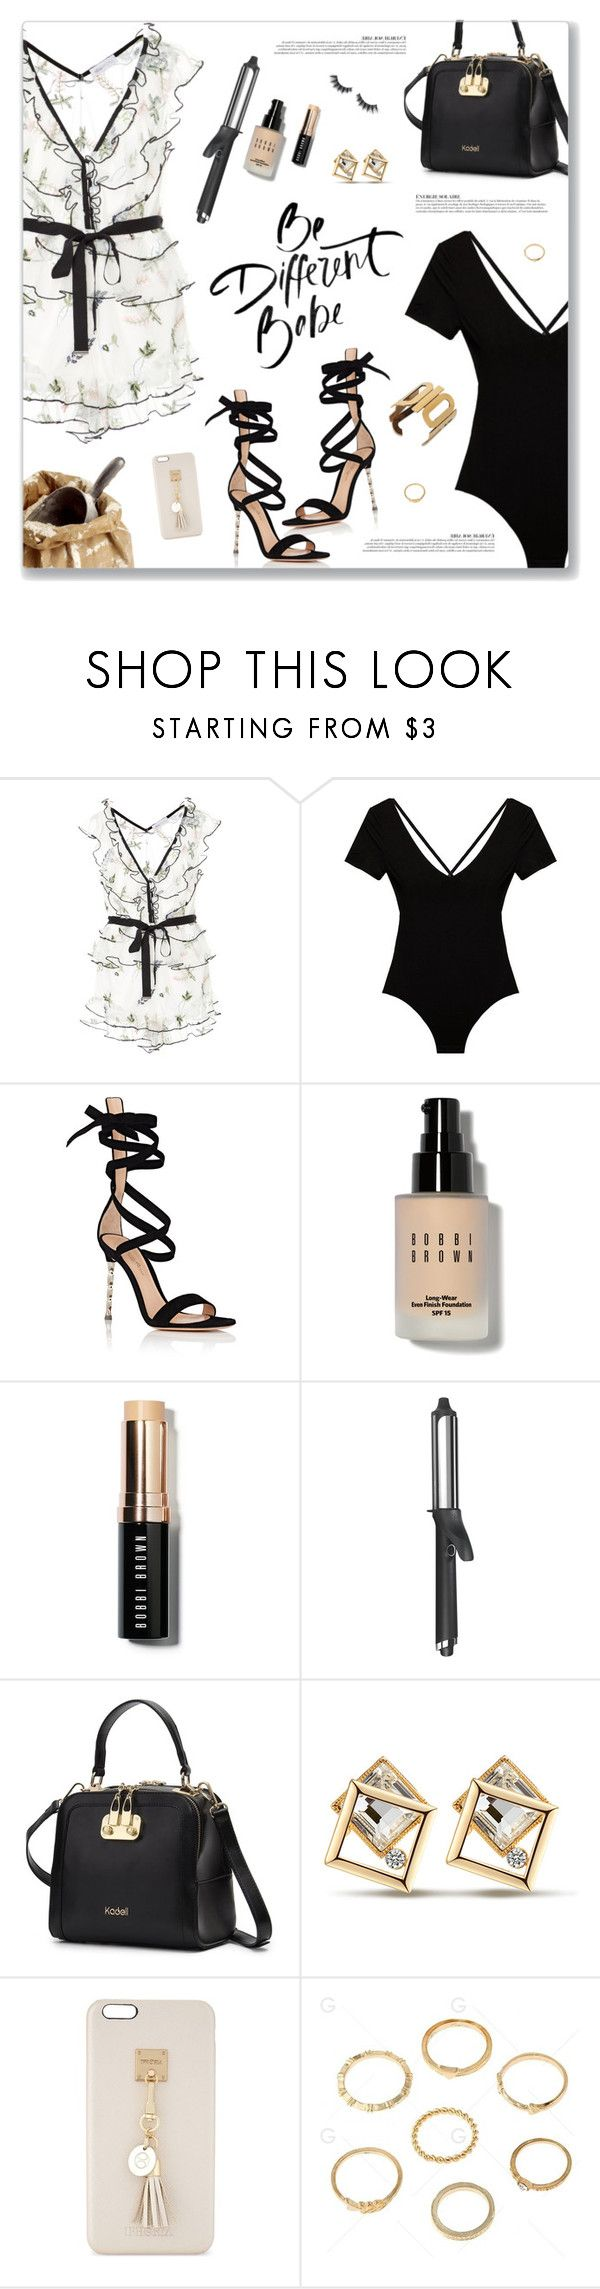 """""""Bad Girl, Usher"""" by blendasantos ❤ liked on Polyvore featuring Alice McCall, Cosabella, Gianvito Rossi, Bobbi Brown Cosmetics, GHD, Anja, Iphoria and Violet Voss"""